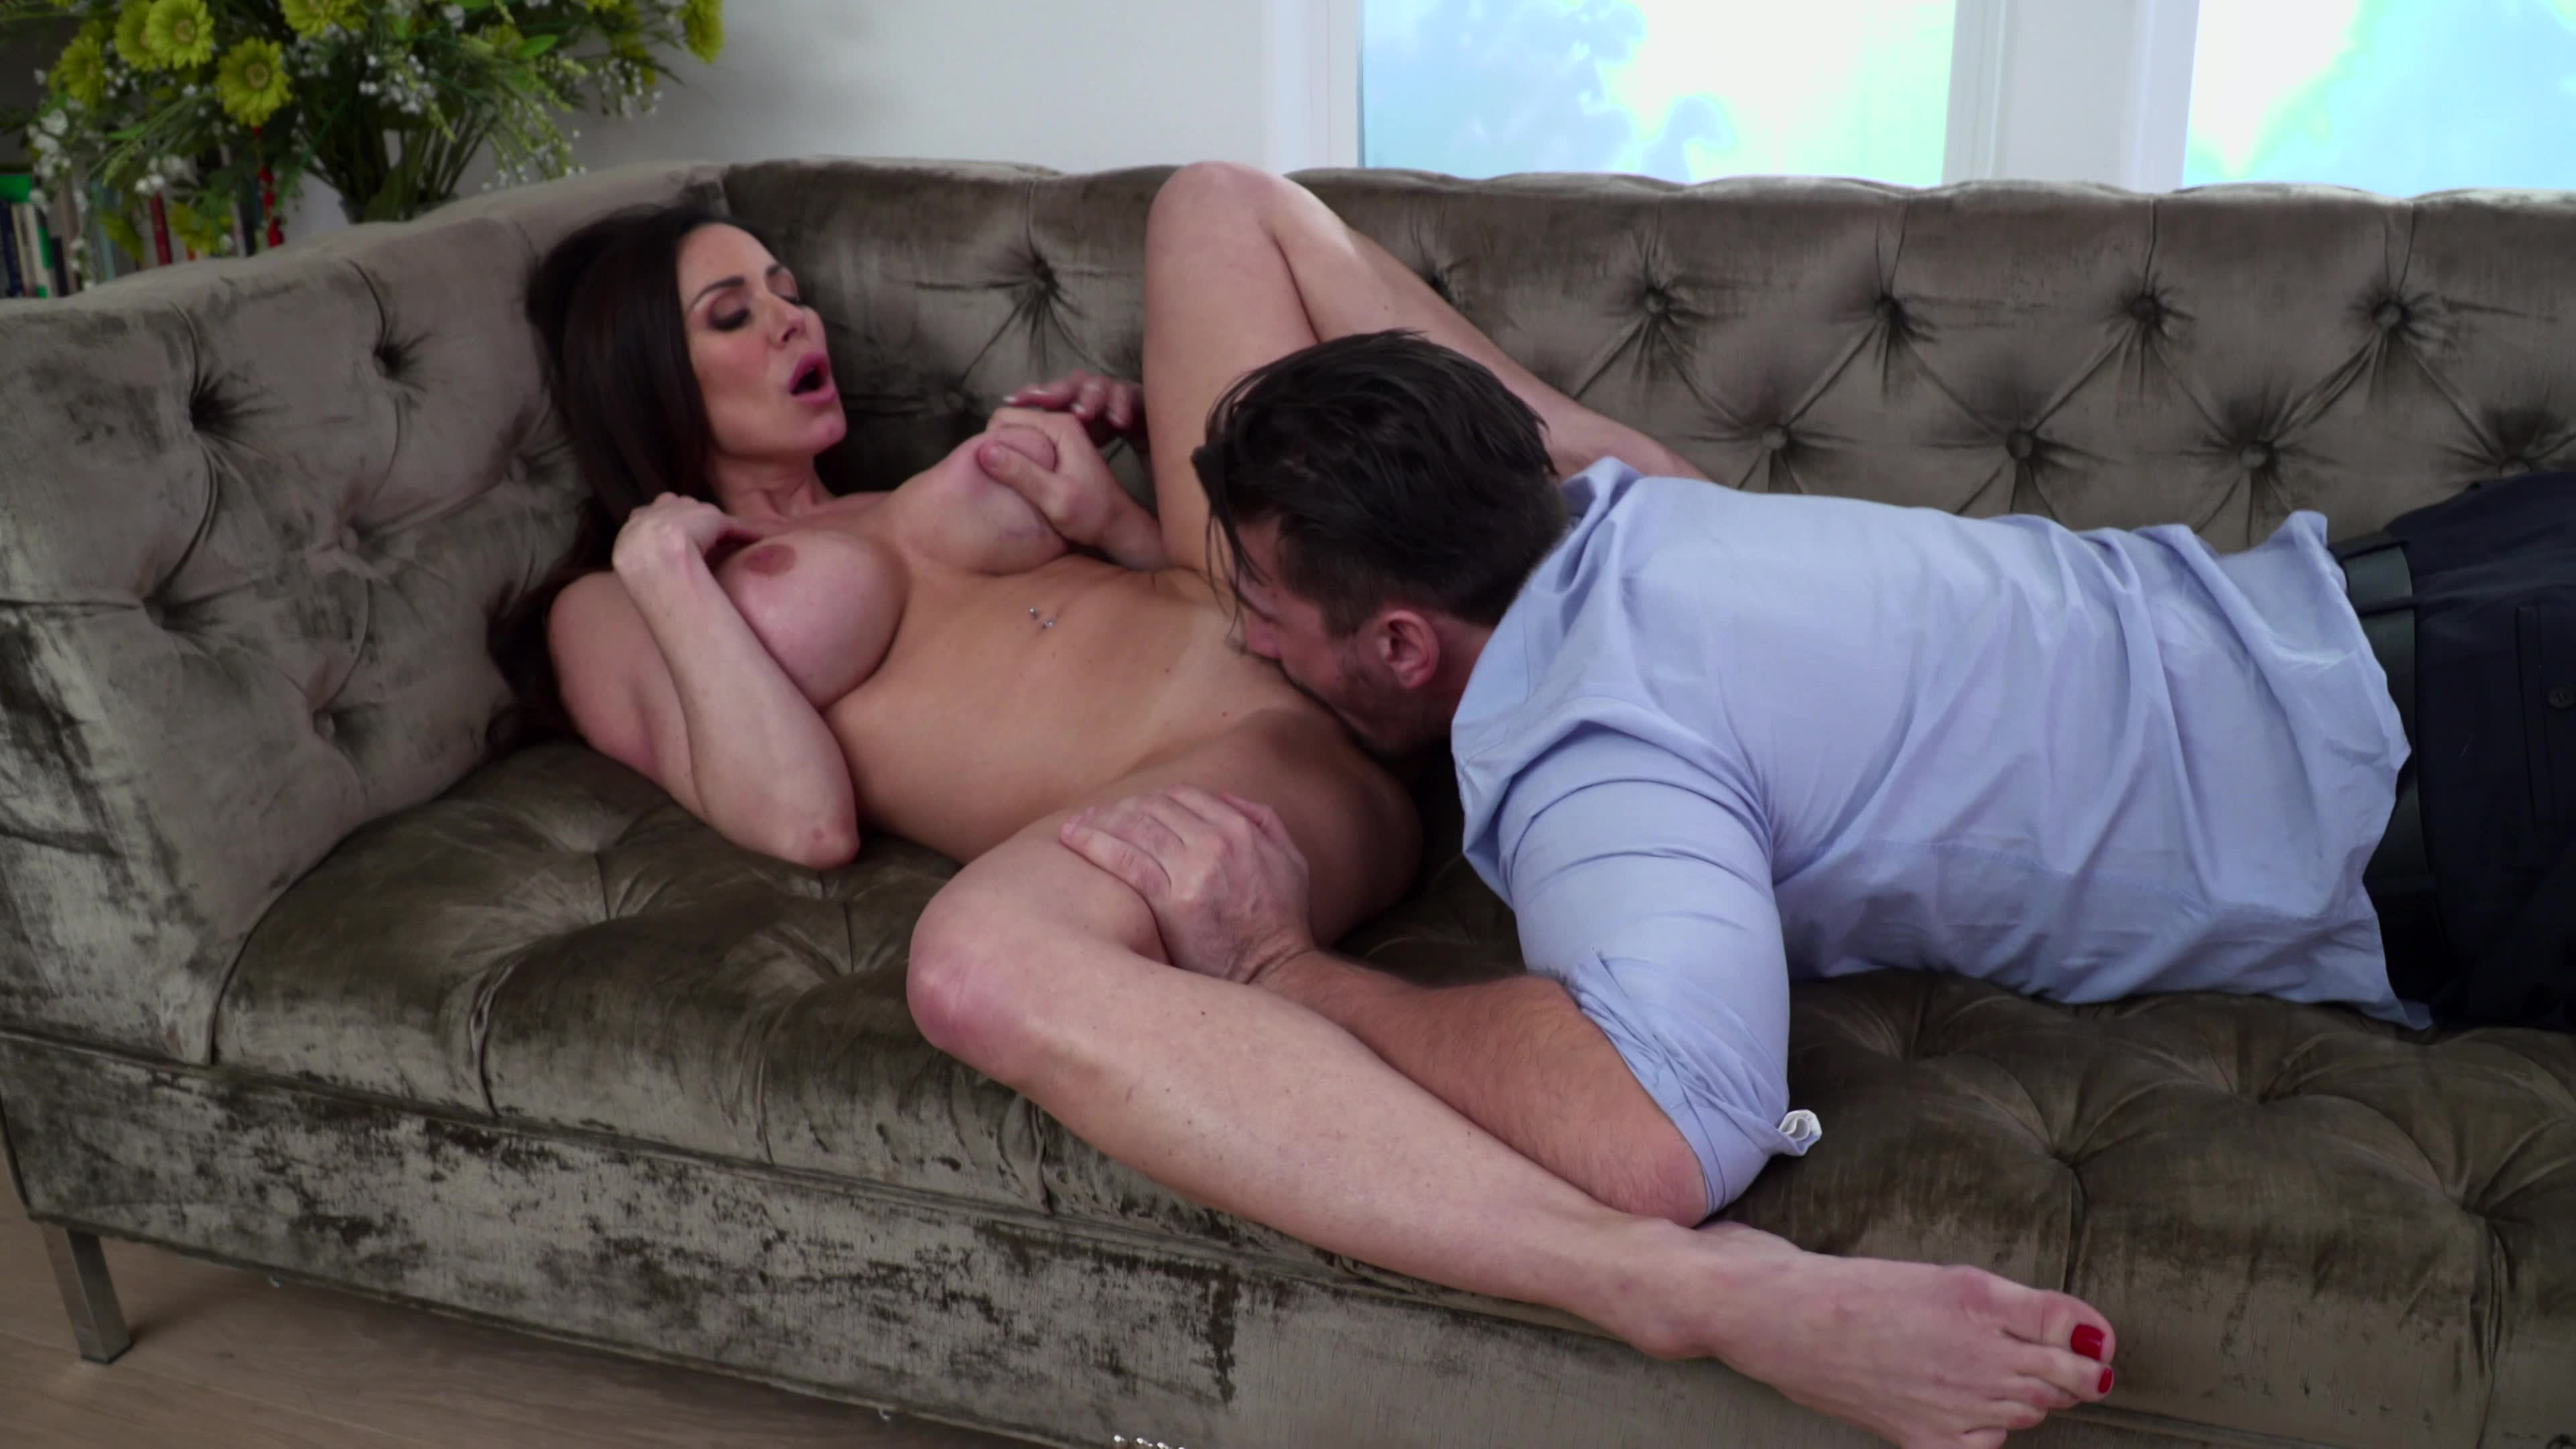 The One I Lust Episode 1 Starring Kendra Lust Manuel Ferrara From One I Lust The Kendras One On One Session Adult Empire Clips Adult Empire